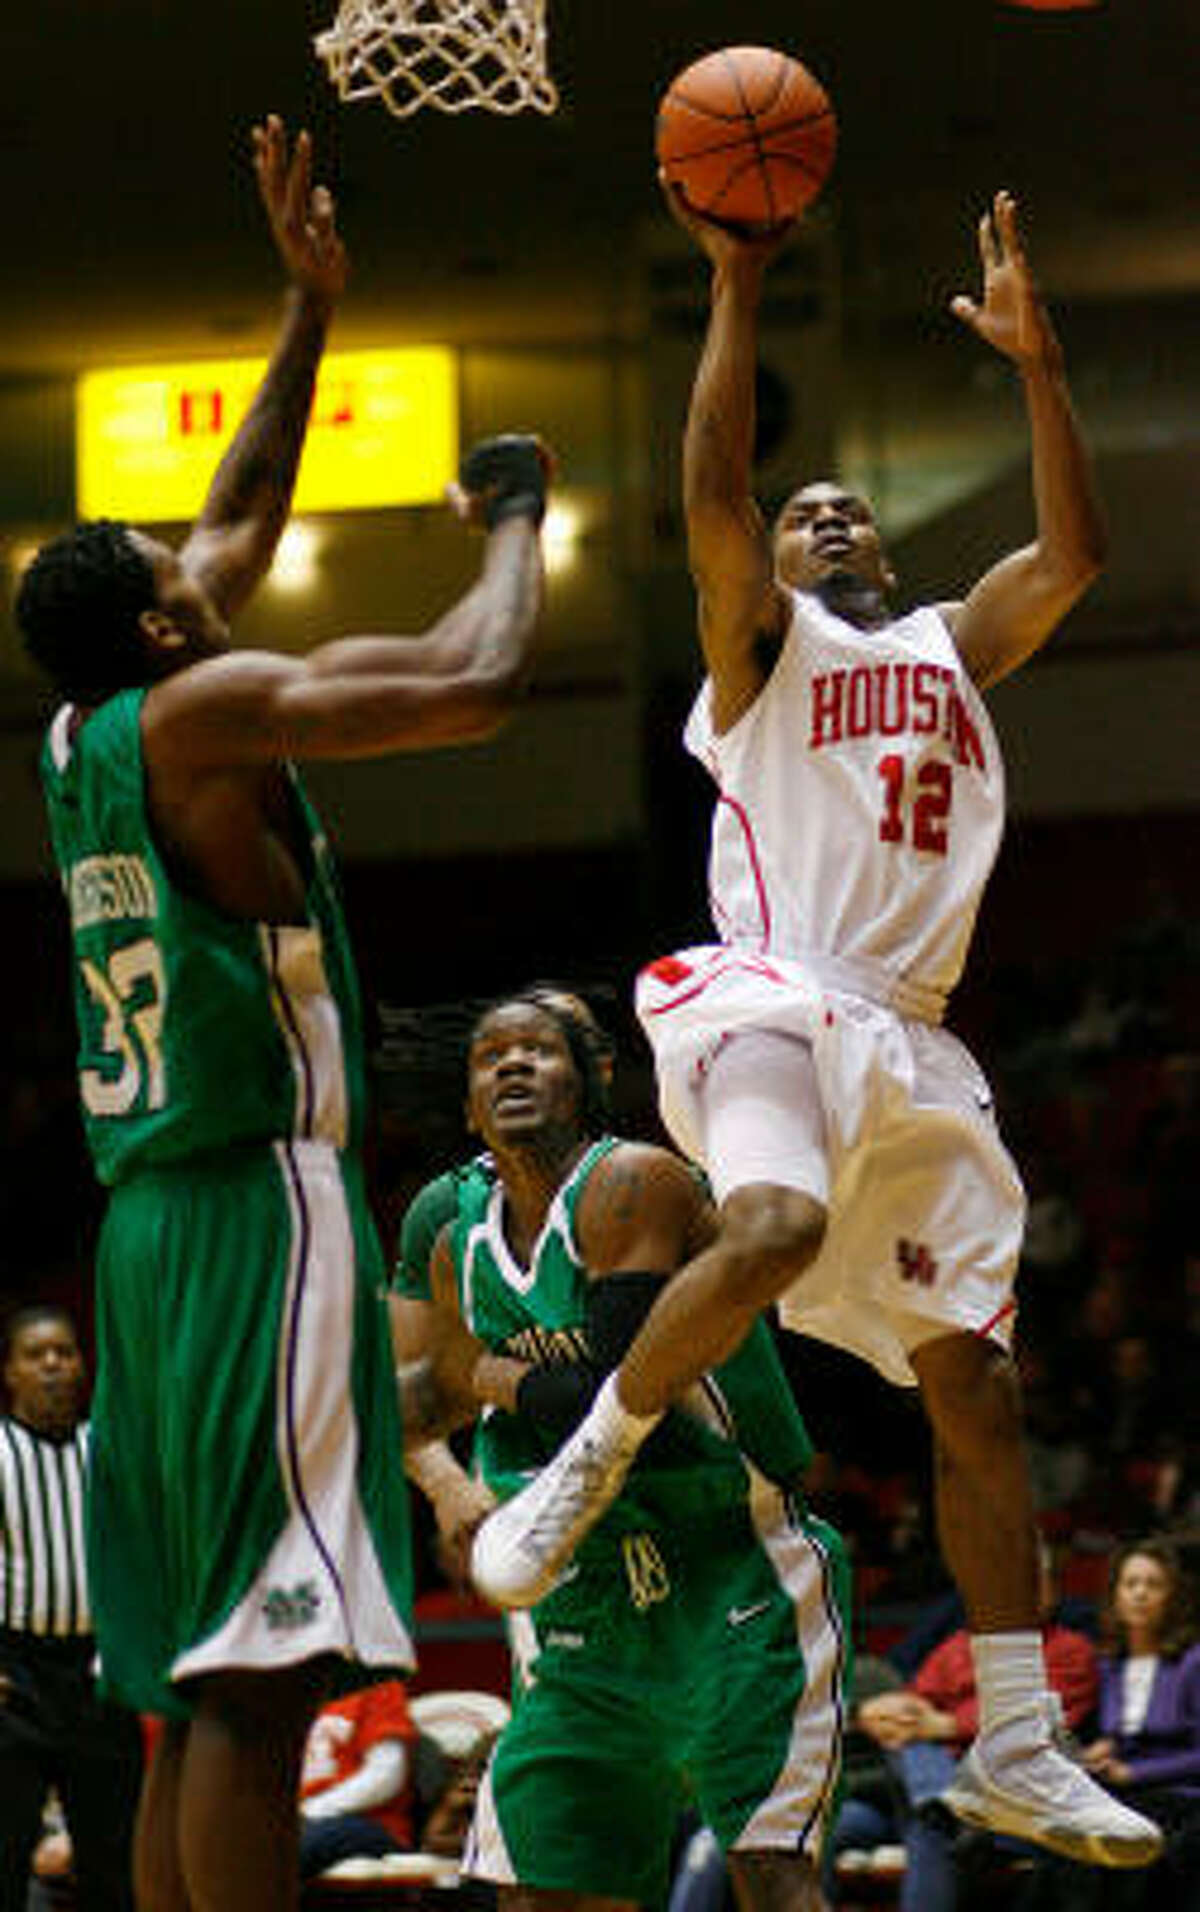 UH guard Aubrey Coleman (12) scored a game-high 37 points in the Cougars' 81-66 win over Marshall on Saturday at Hofheinz Pavilion.